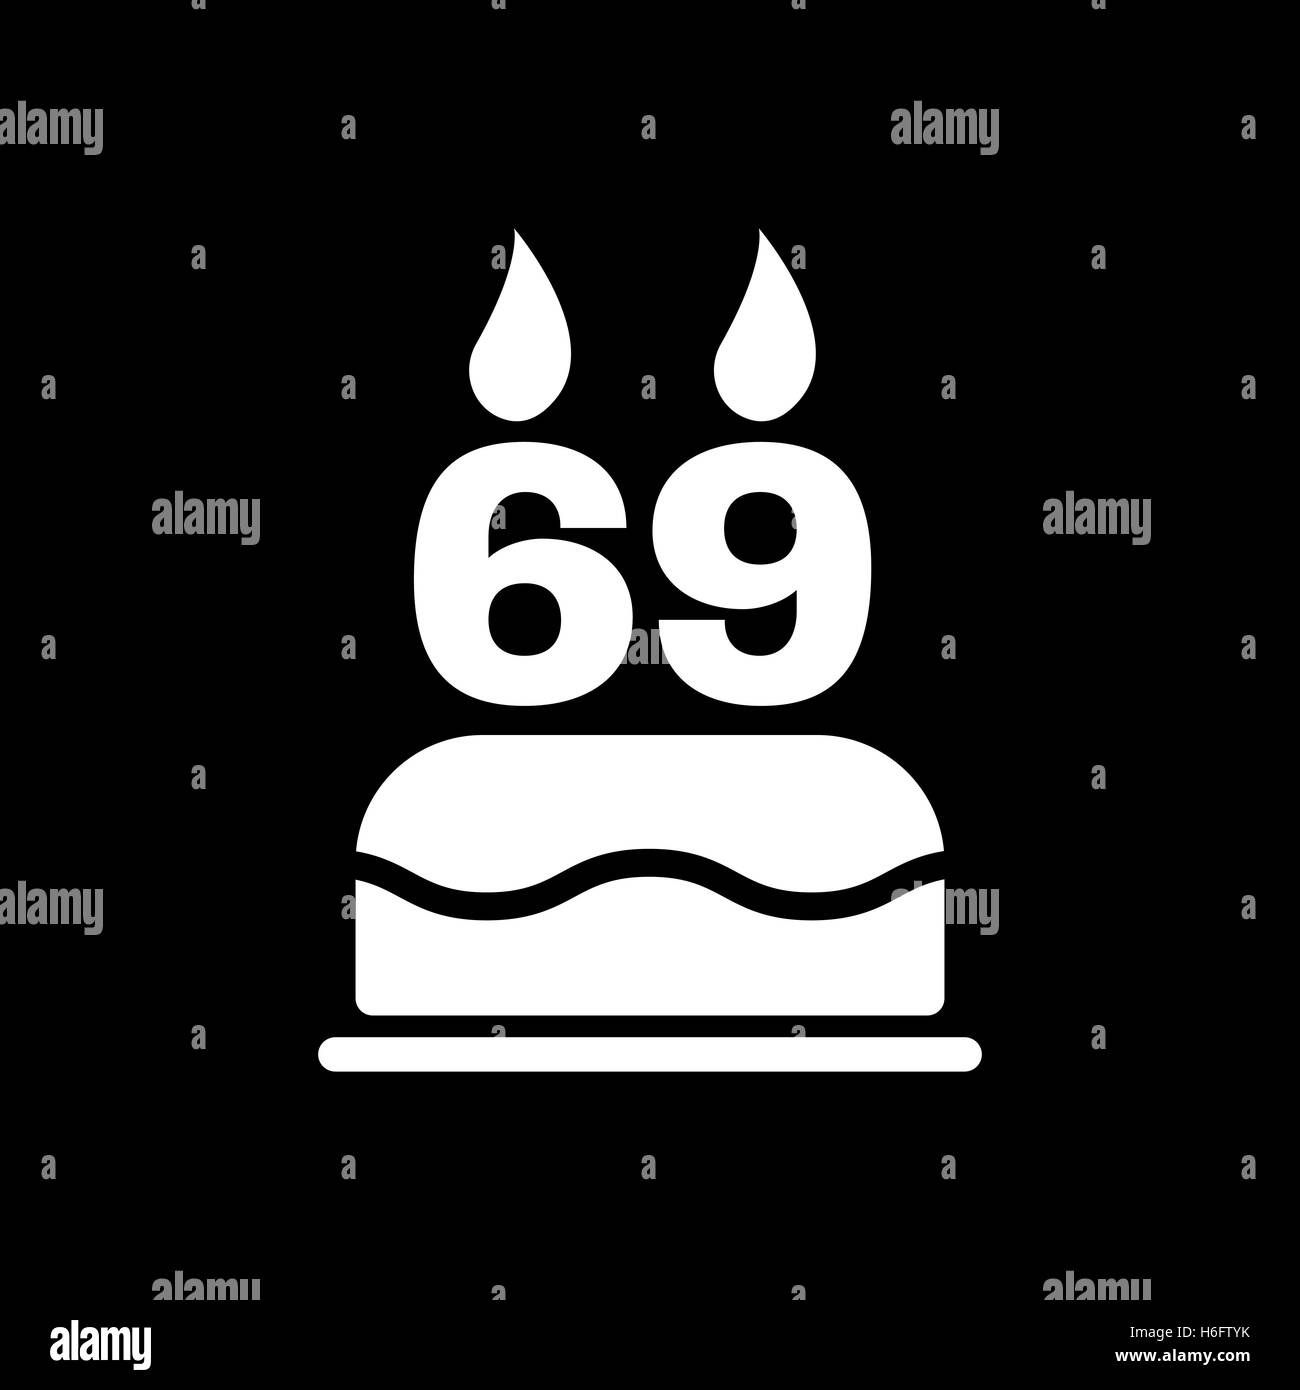 The Birthday Cake With Candles In The Form Of Number 69 Icon Stock